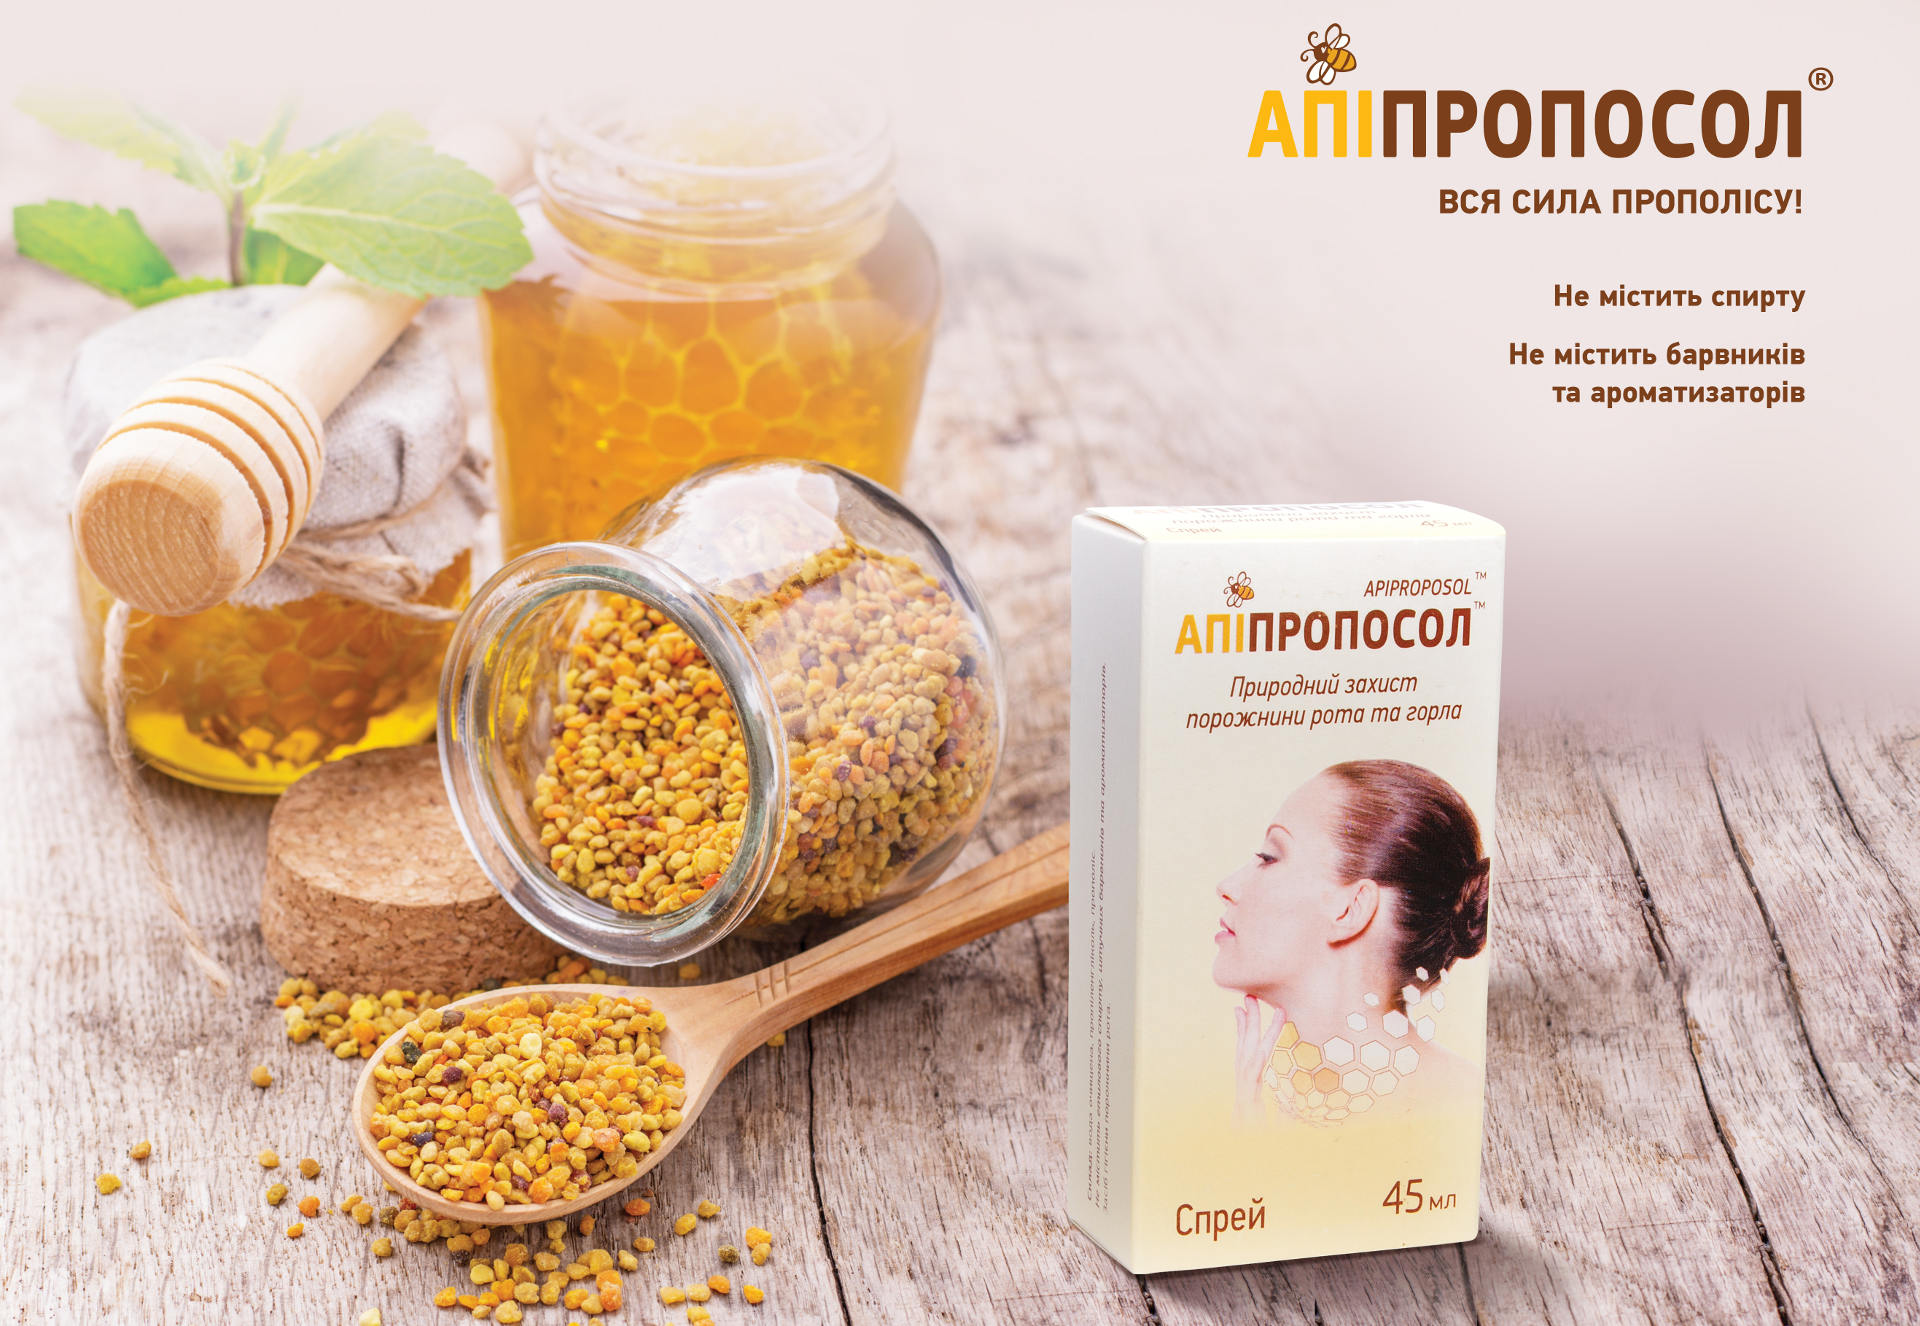 The design of the packaging of a medical preparation. Propolis. Treatment of throat and colds.